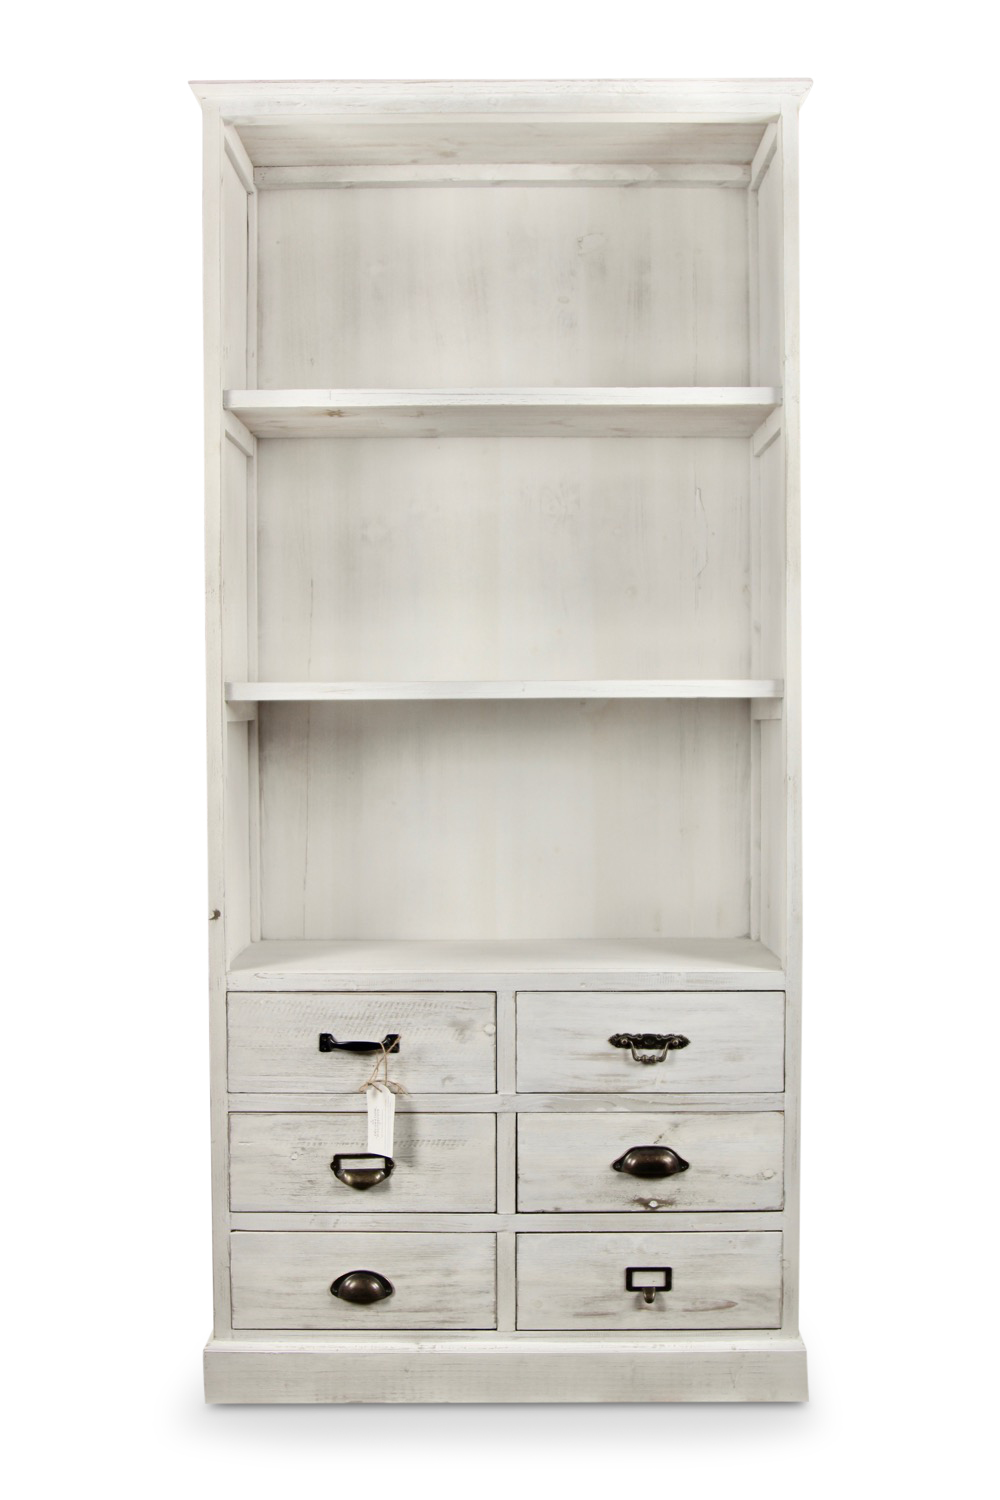 buffet vaisselier rangement bois 6 tiroirs ceruse blanc 78x34x168cm. Black Bedroom Furniture Sets. Home Design Ideas